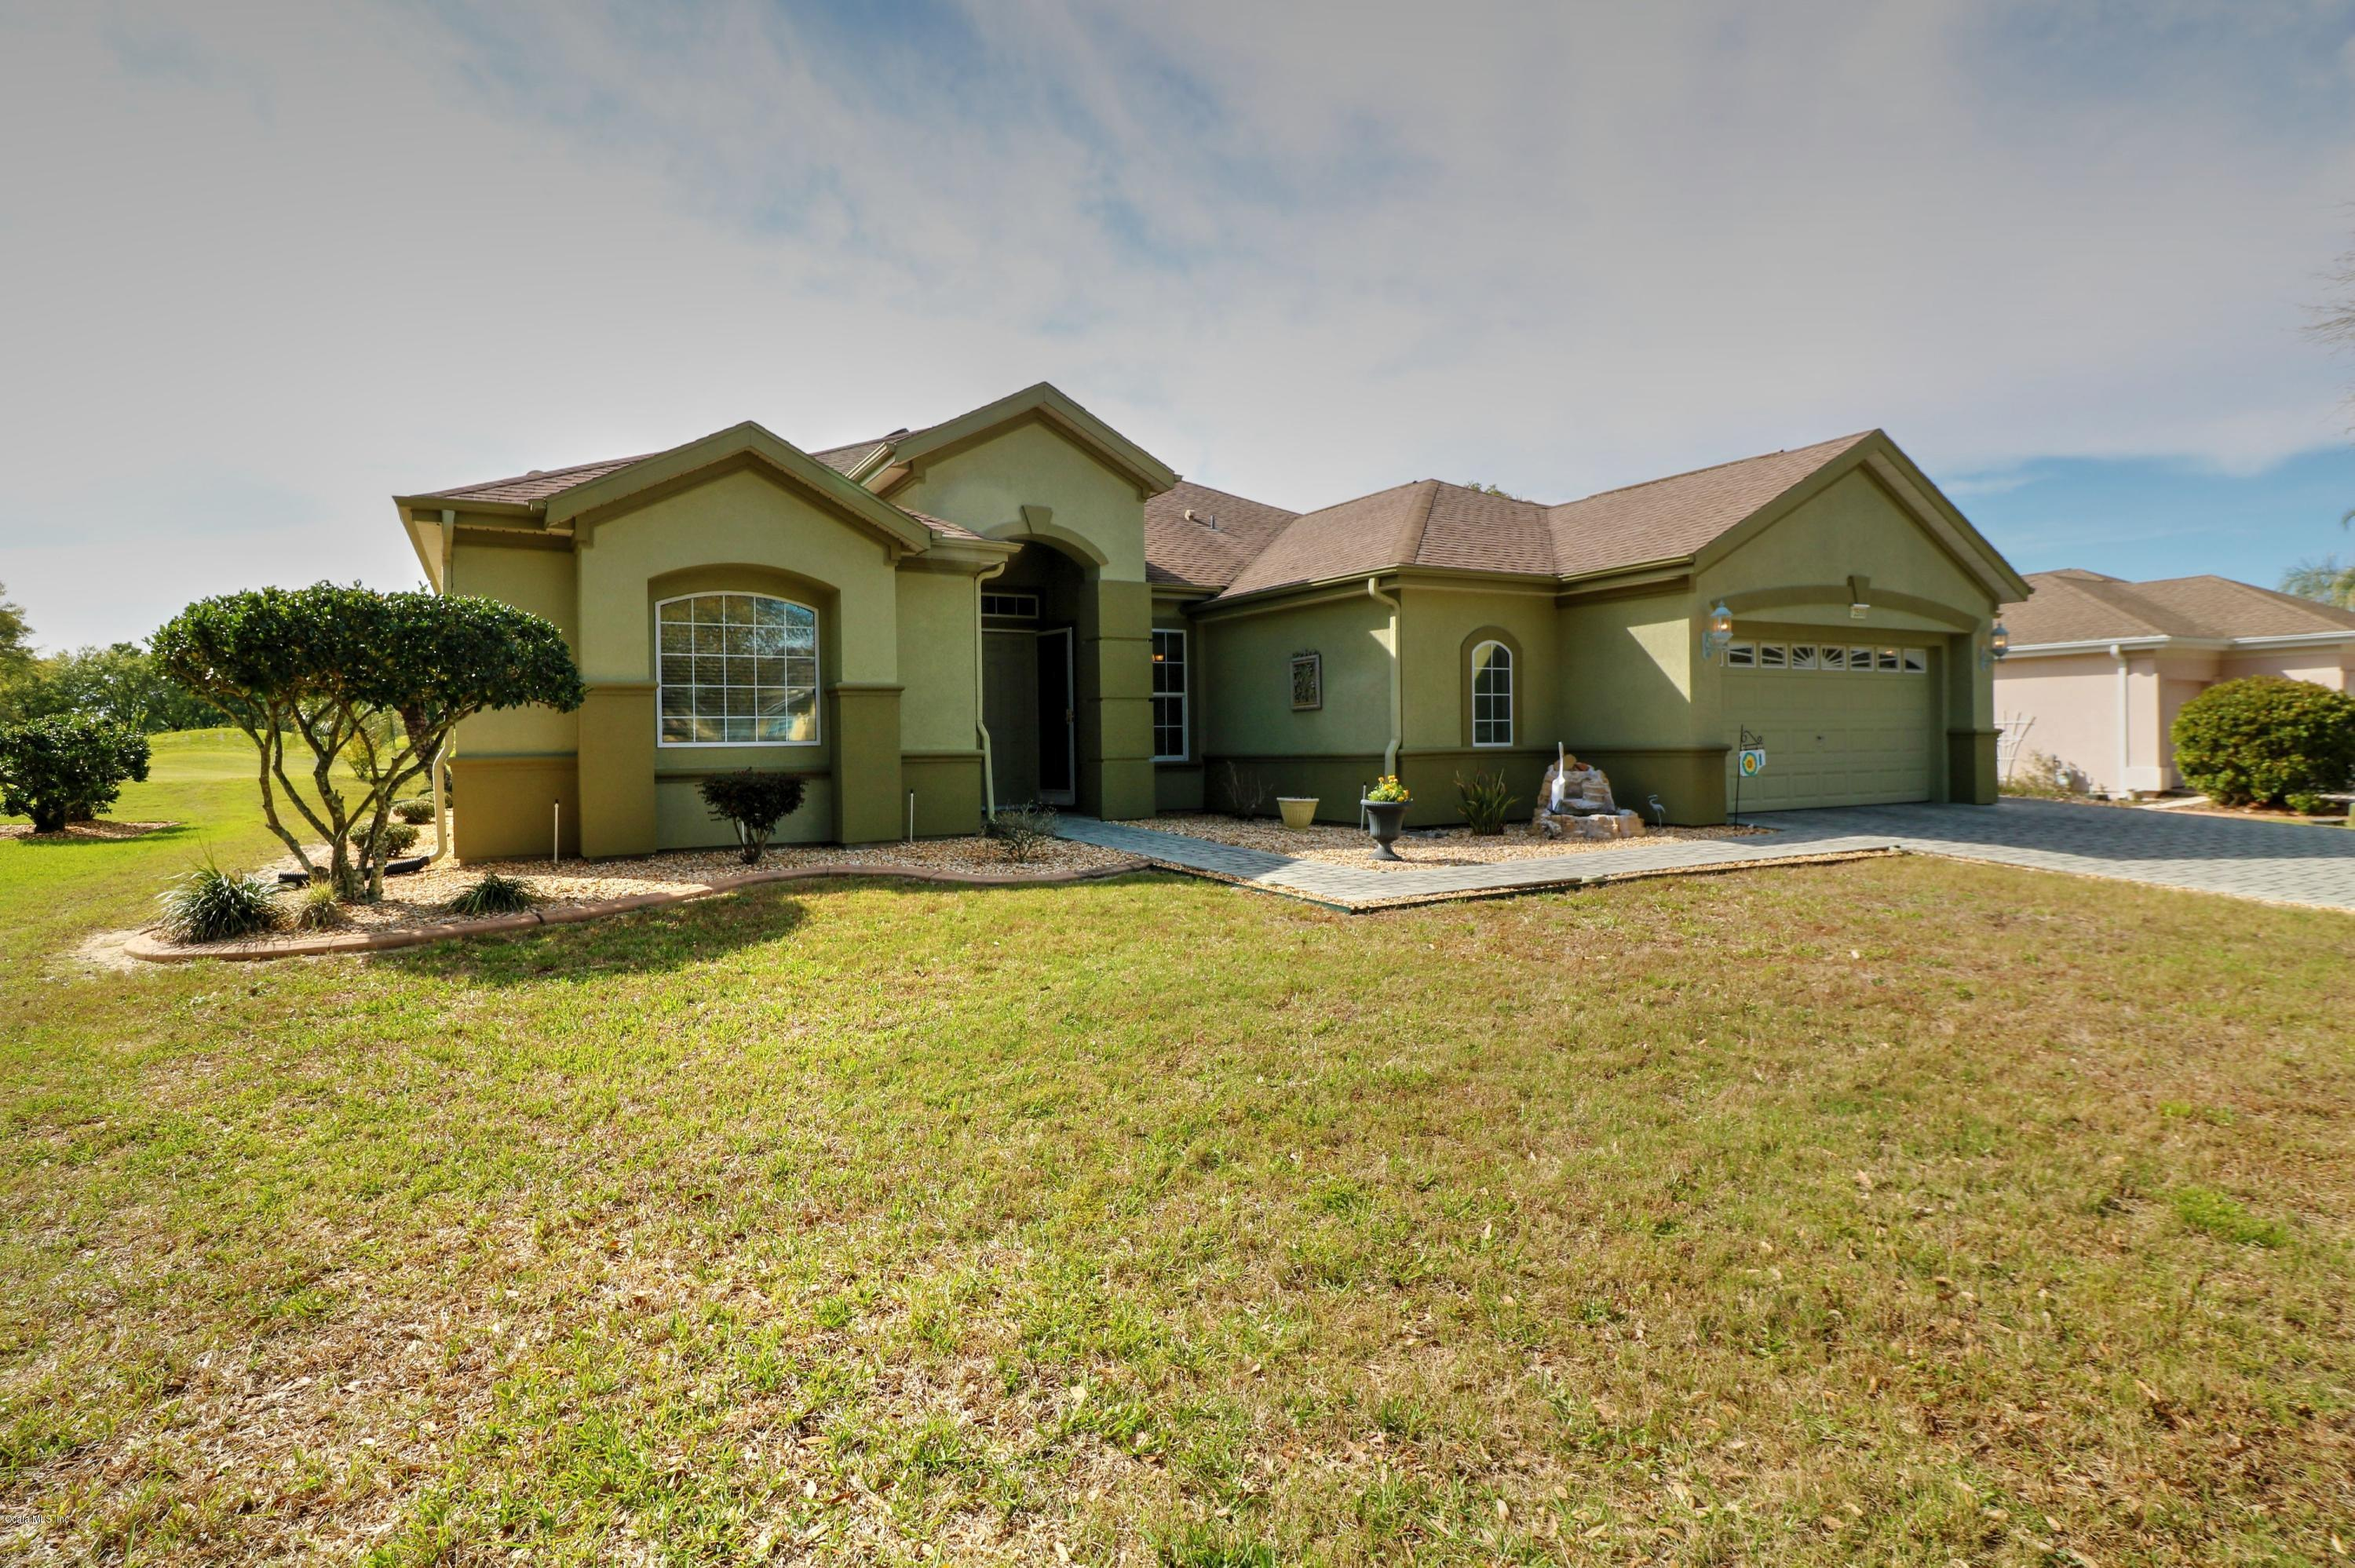 13500 SE 97TH TERRACE ROAD, SUMMERFIELD, FL 34491